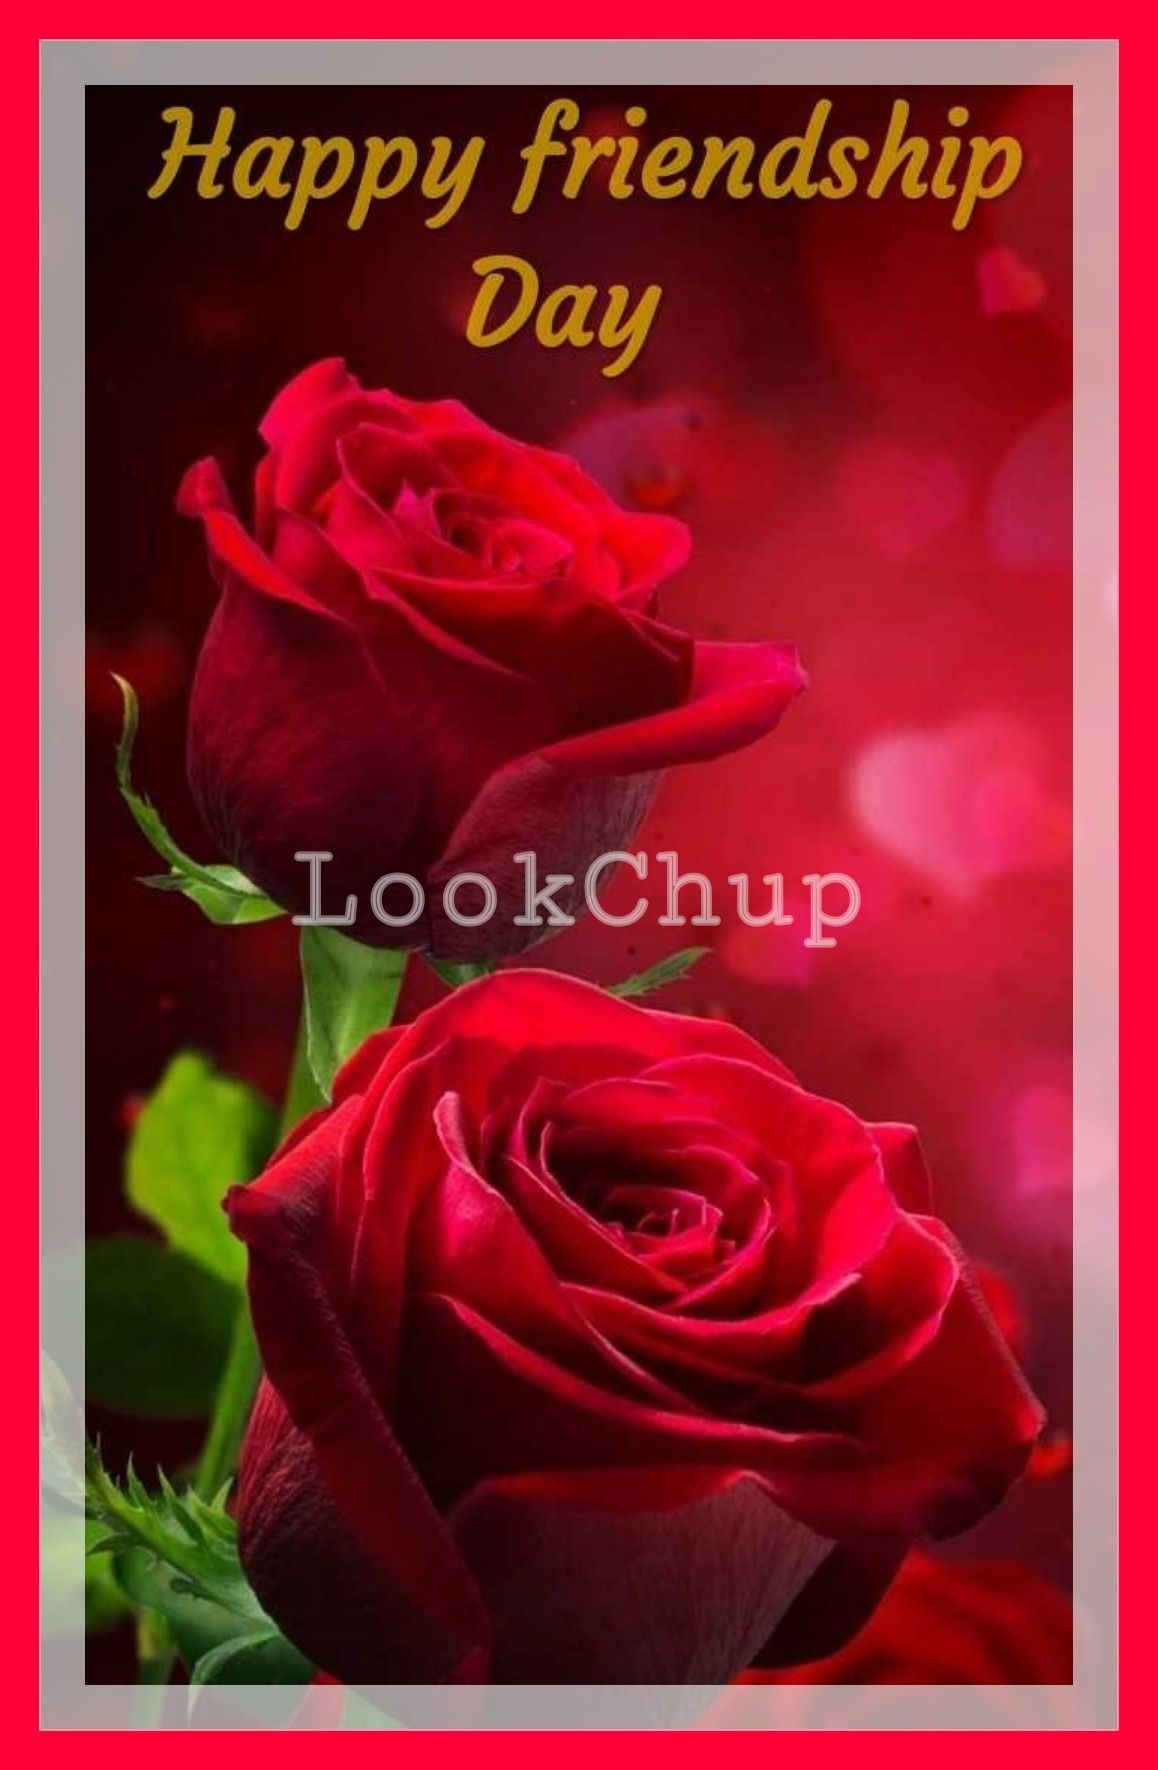 Pin By Rohit On Rohit Happy Friendship Day Happy Friendship Rose Friendship rose day images for friends